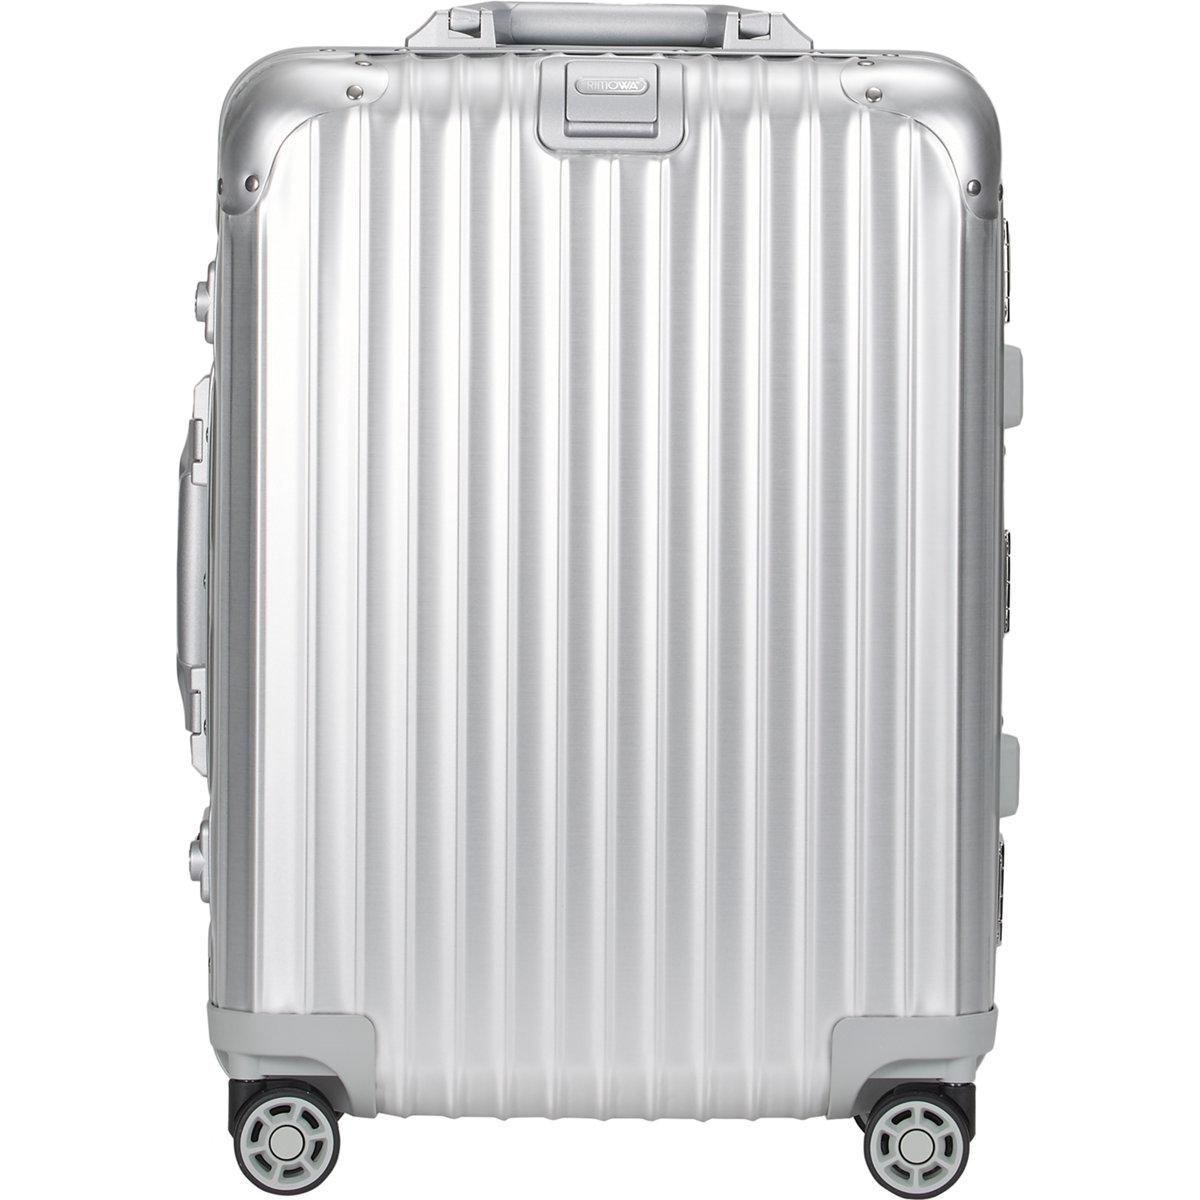 new original view resized rimowa size multiwheel for been luggage image cabins bazaar to brand travel this click sale has topas cabin